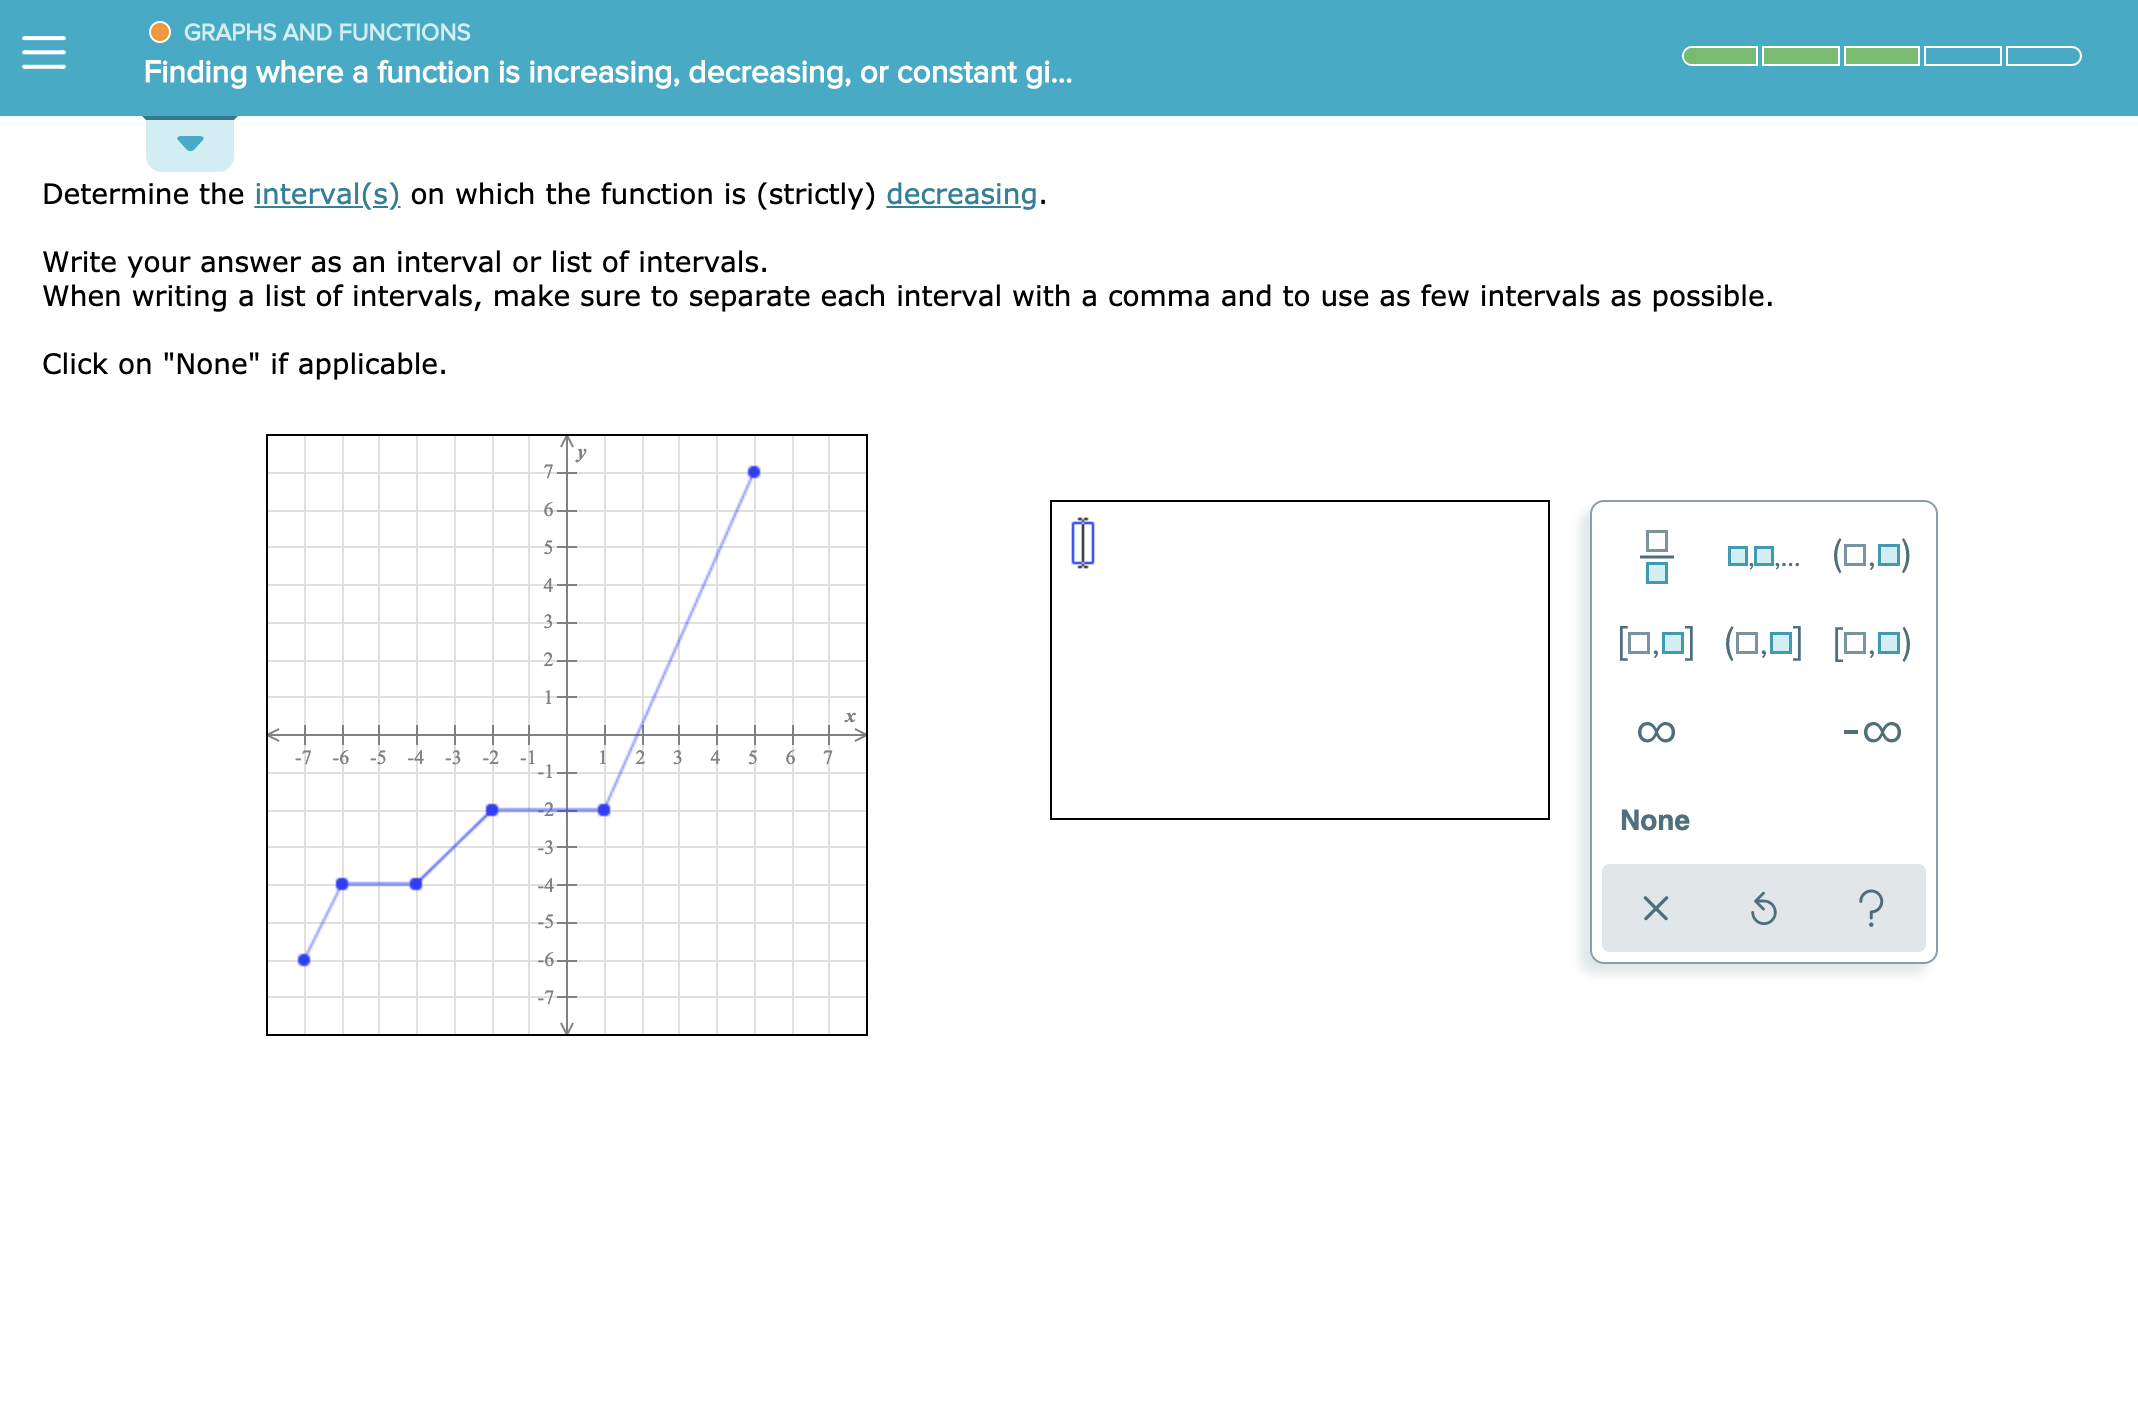 """GRAPHS AND FUNCTIONS Finding where a function is increasing, decreasing, or constant gi... Determine the interval(s) on which the function is (strictly) decreasing. Write your answer as an interval or list of intervals. When writing a list of intervals, make sure to separate each interval with a comma and to use as few intervals as possible. Click on """"None"""" if applicable 7 6- 5+ 0(0,O) 4- 3 O(O ) 2+ -7 -5 4 -2 1 2 4 5 6 6 -3 - ] -2- None -3 - -4- ? X --5+ -6+ -7-"""